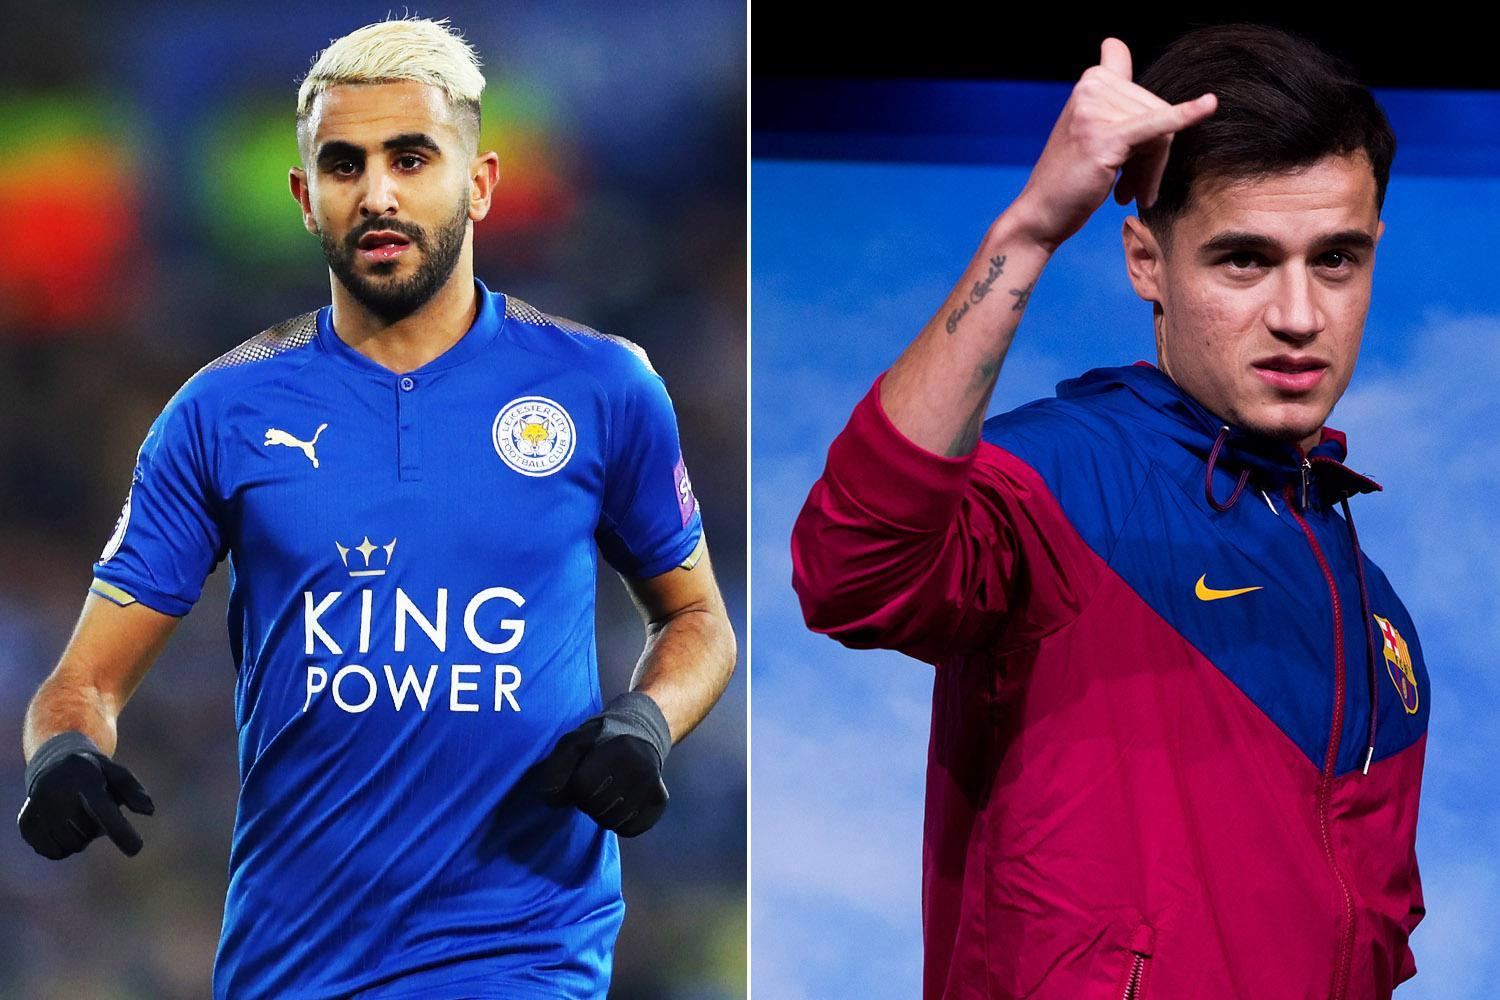 Leicester star Riyad Mahrez should to be worth £145million just like Philippe Coutinho, according to the stats